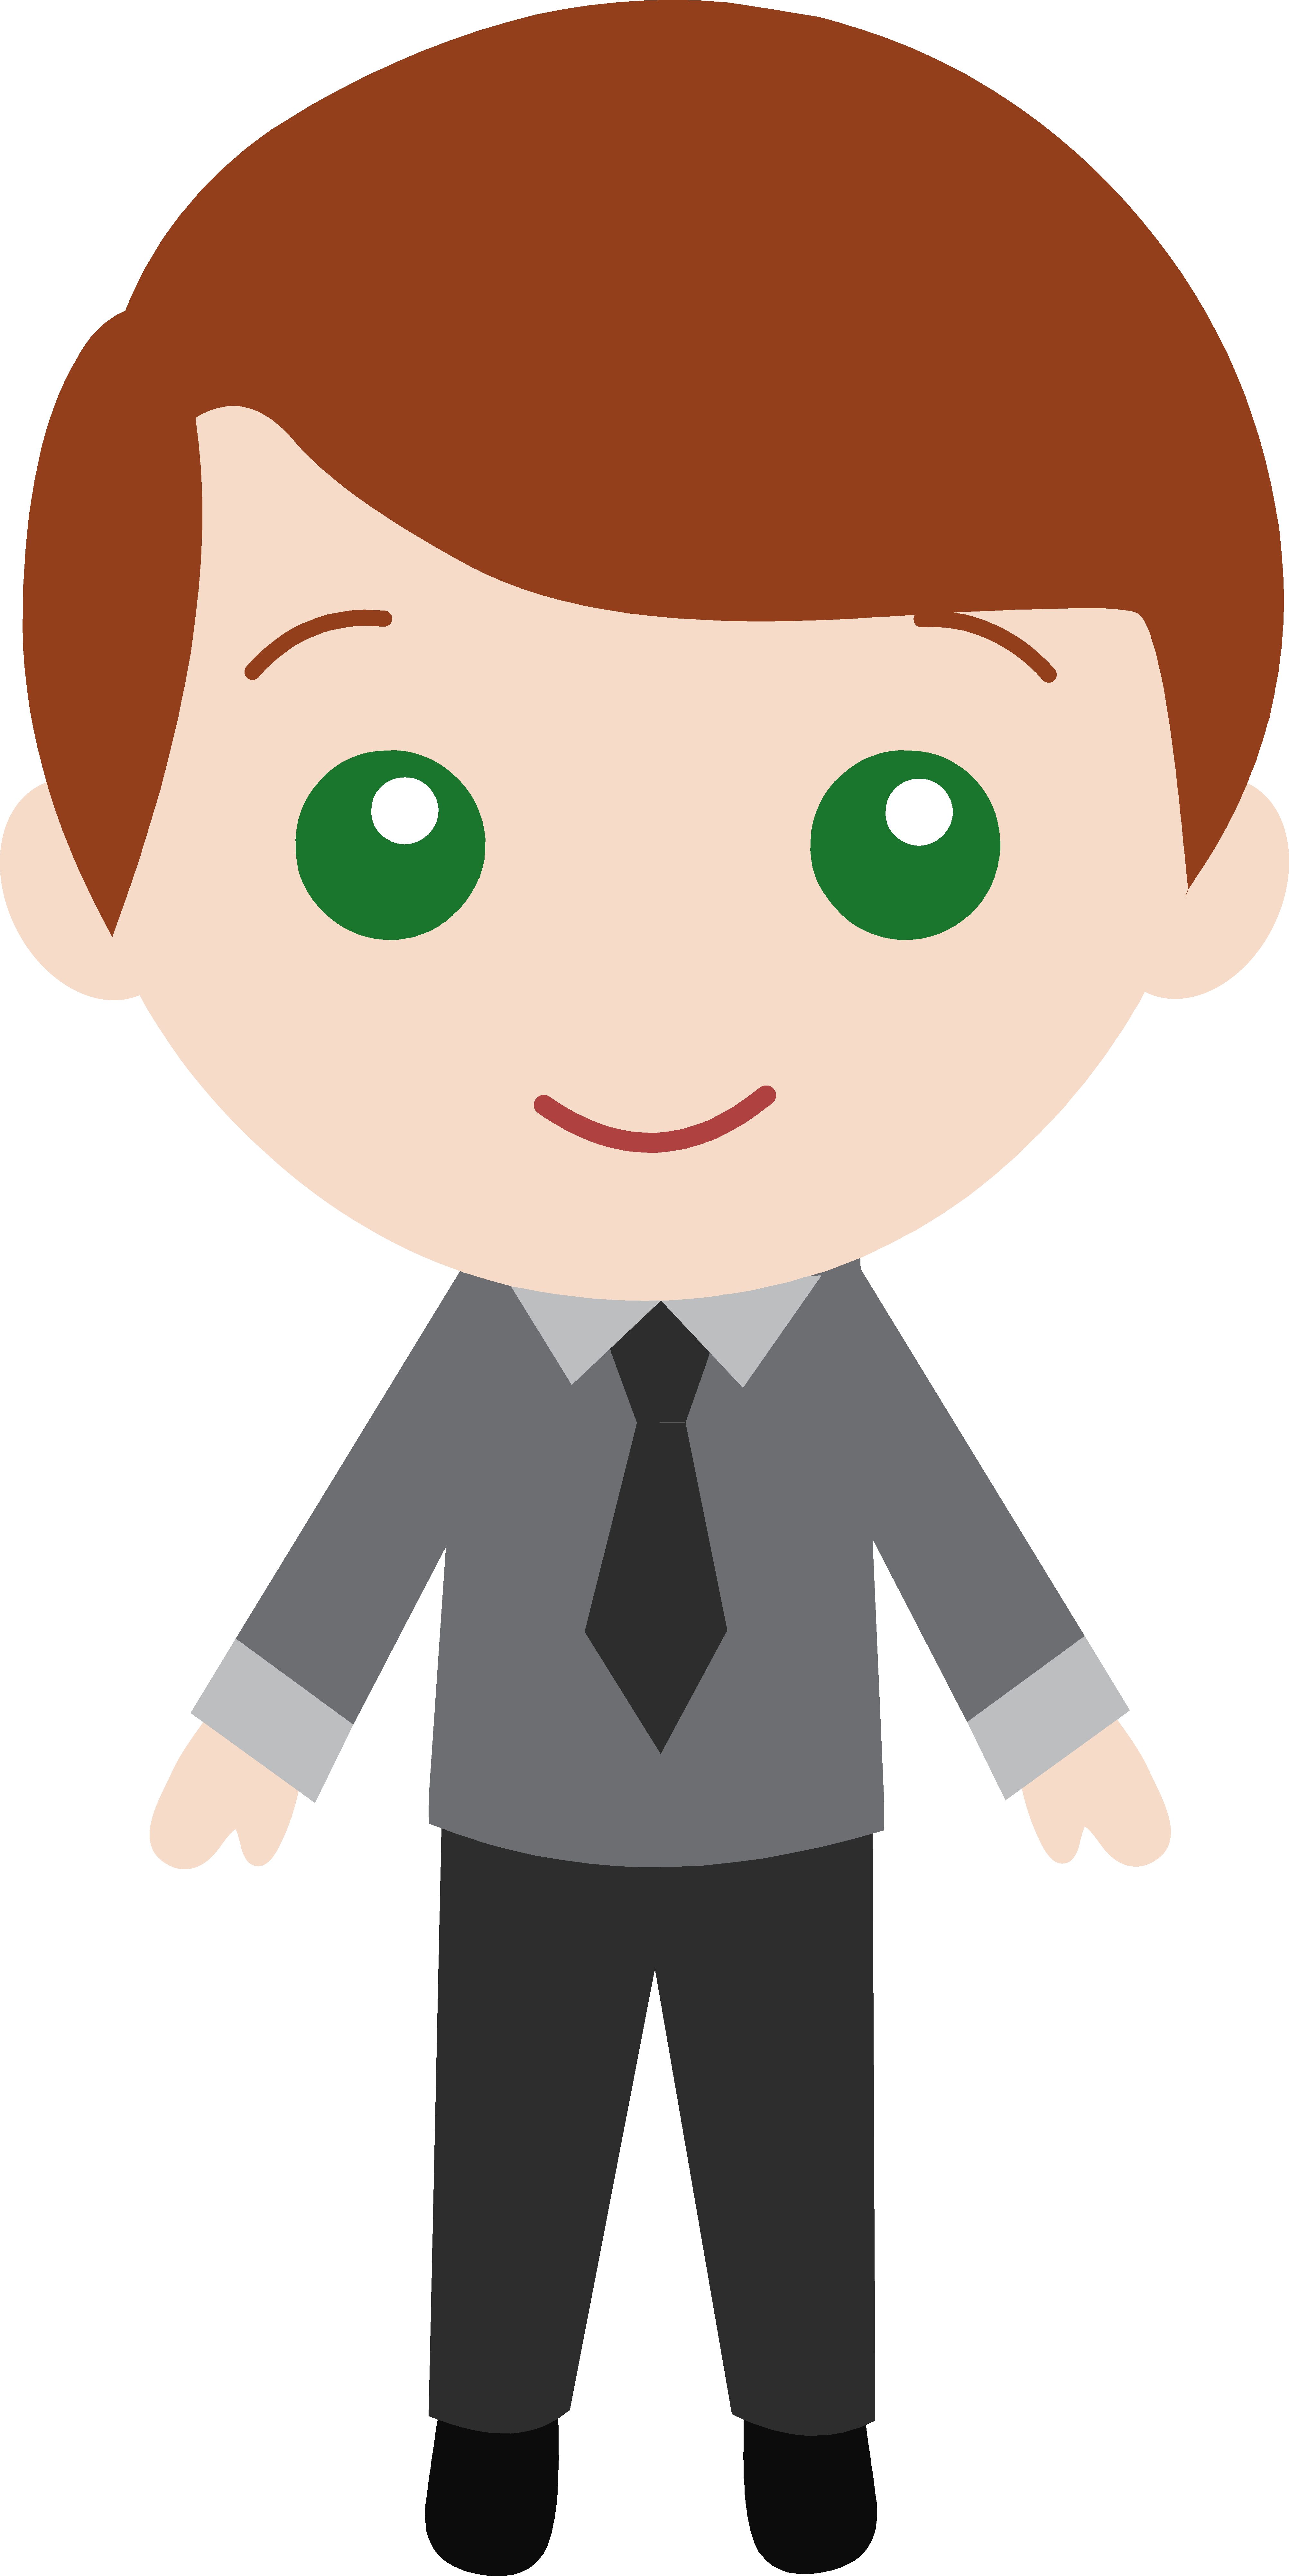 svg transparent library Little Guy Wearing a Suit